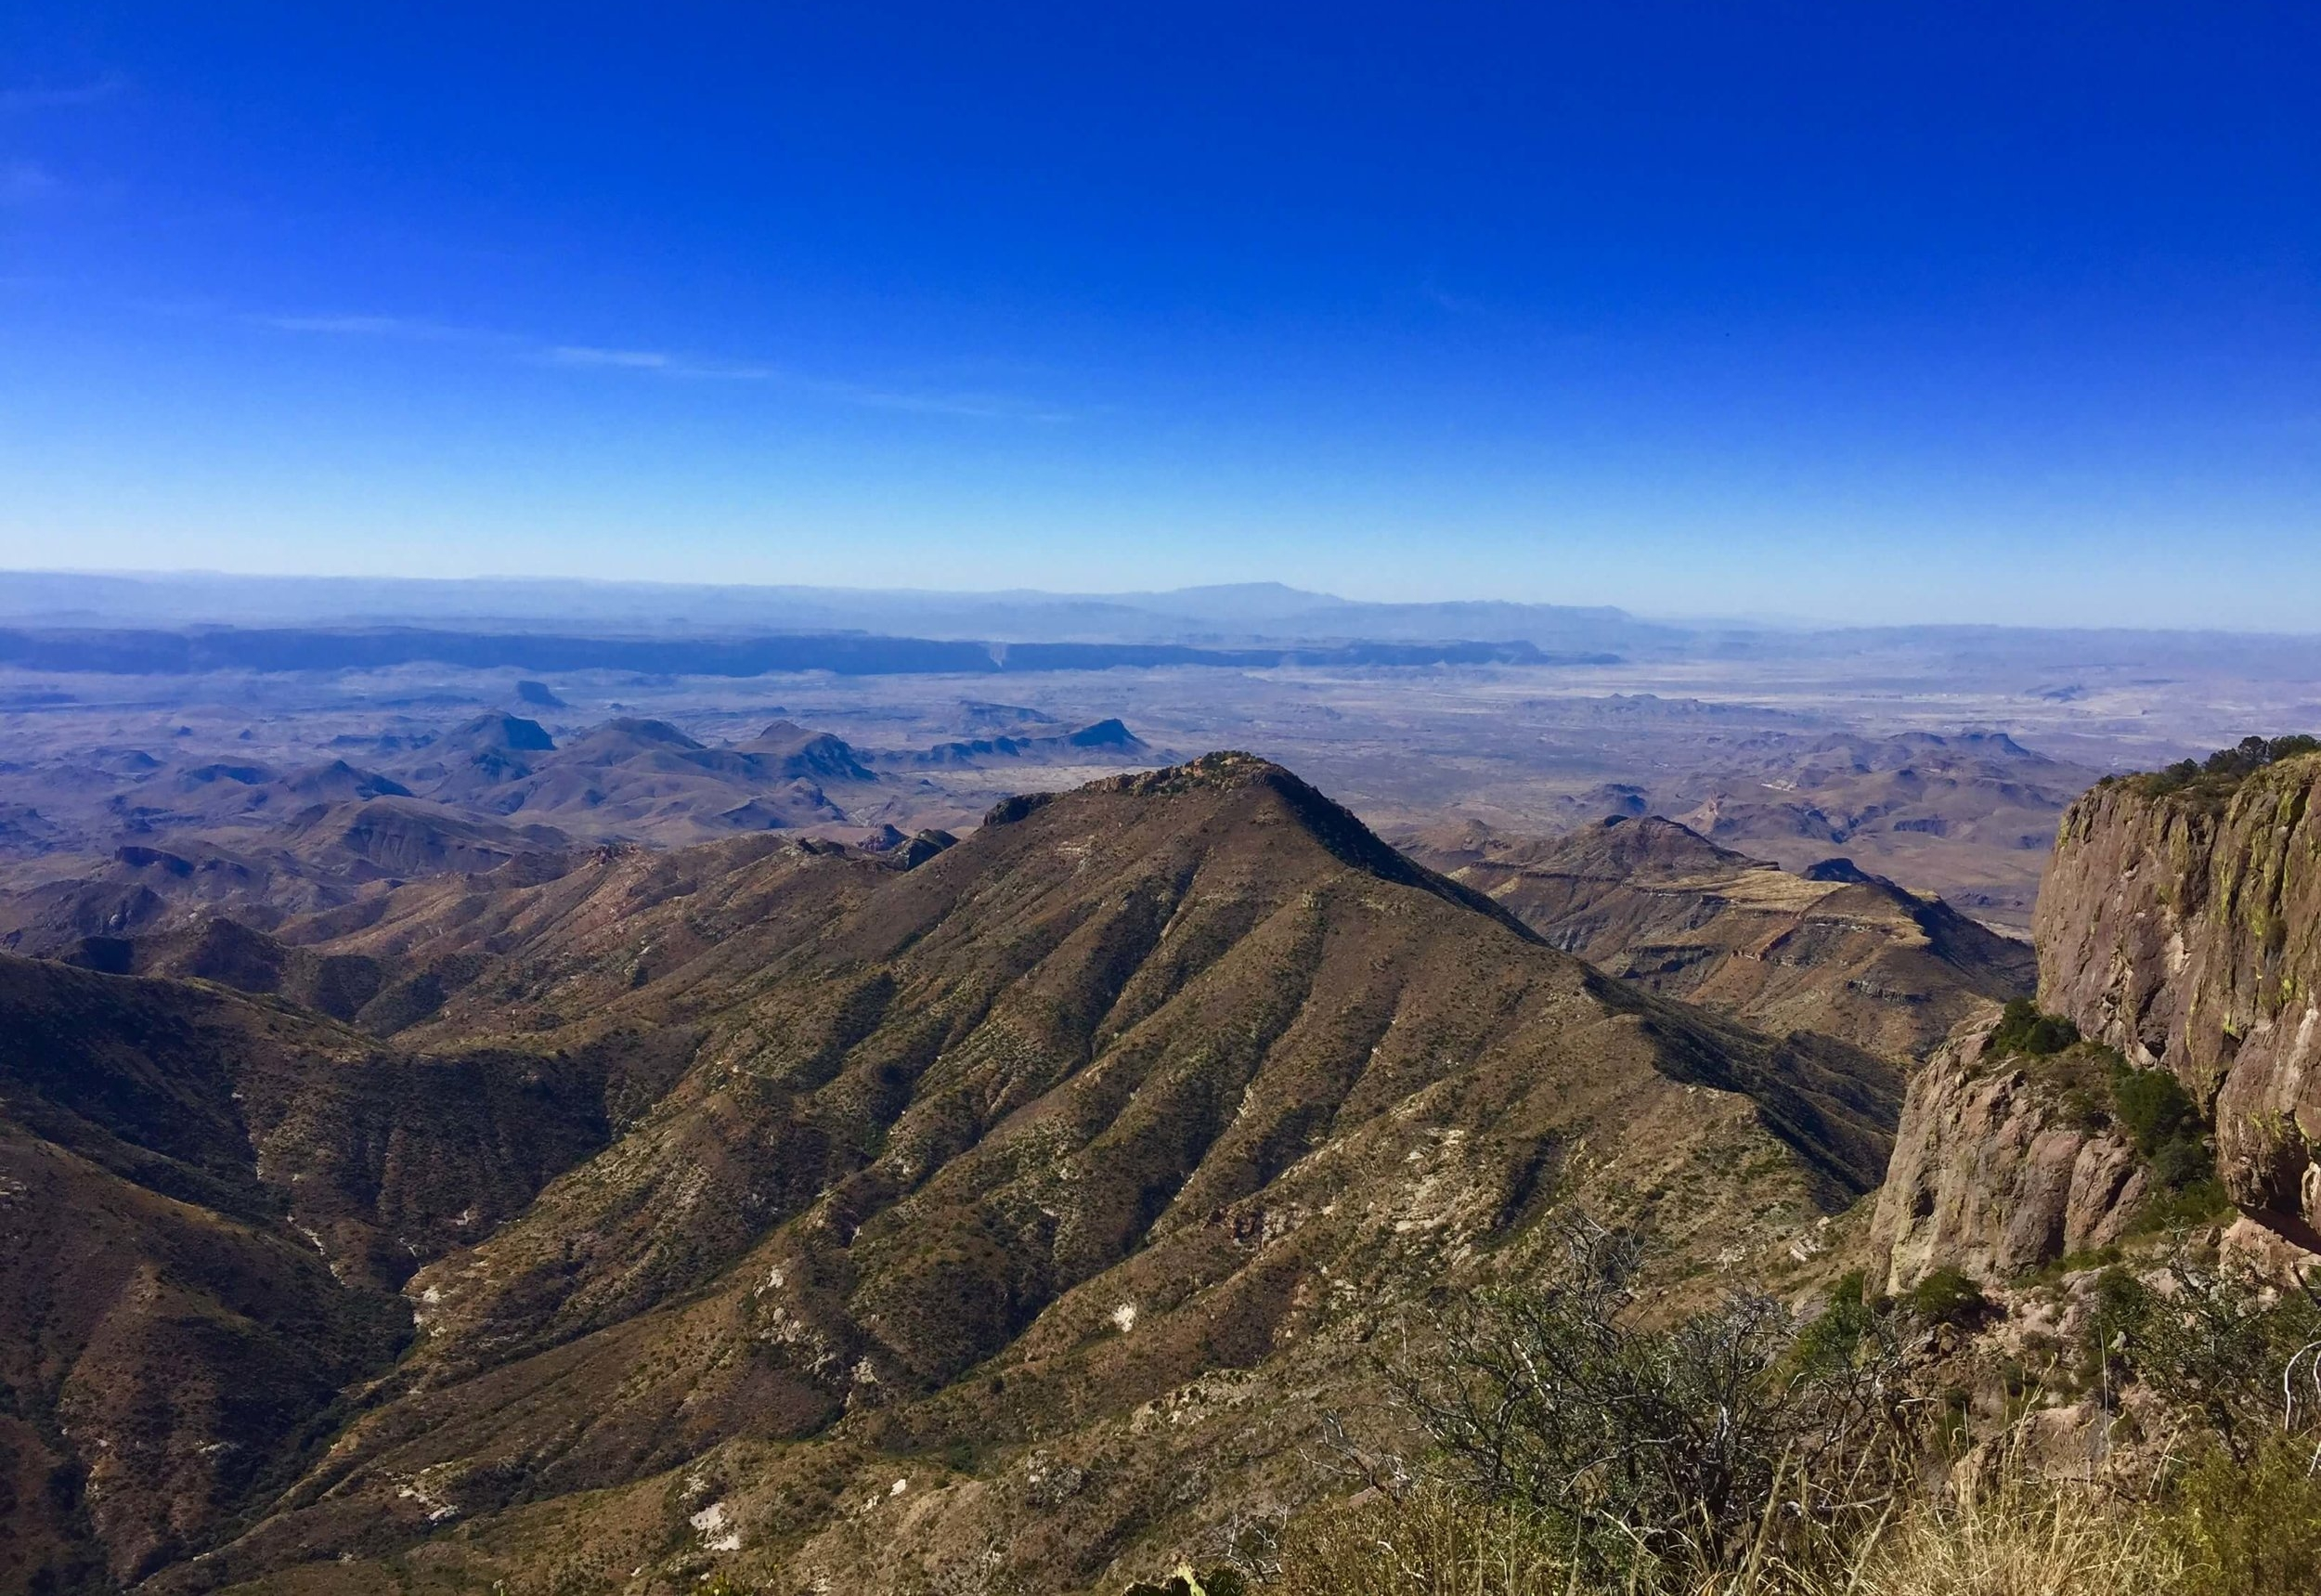 Gazing over the edge of South Rim of the Chisos Mountains